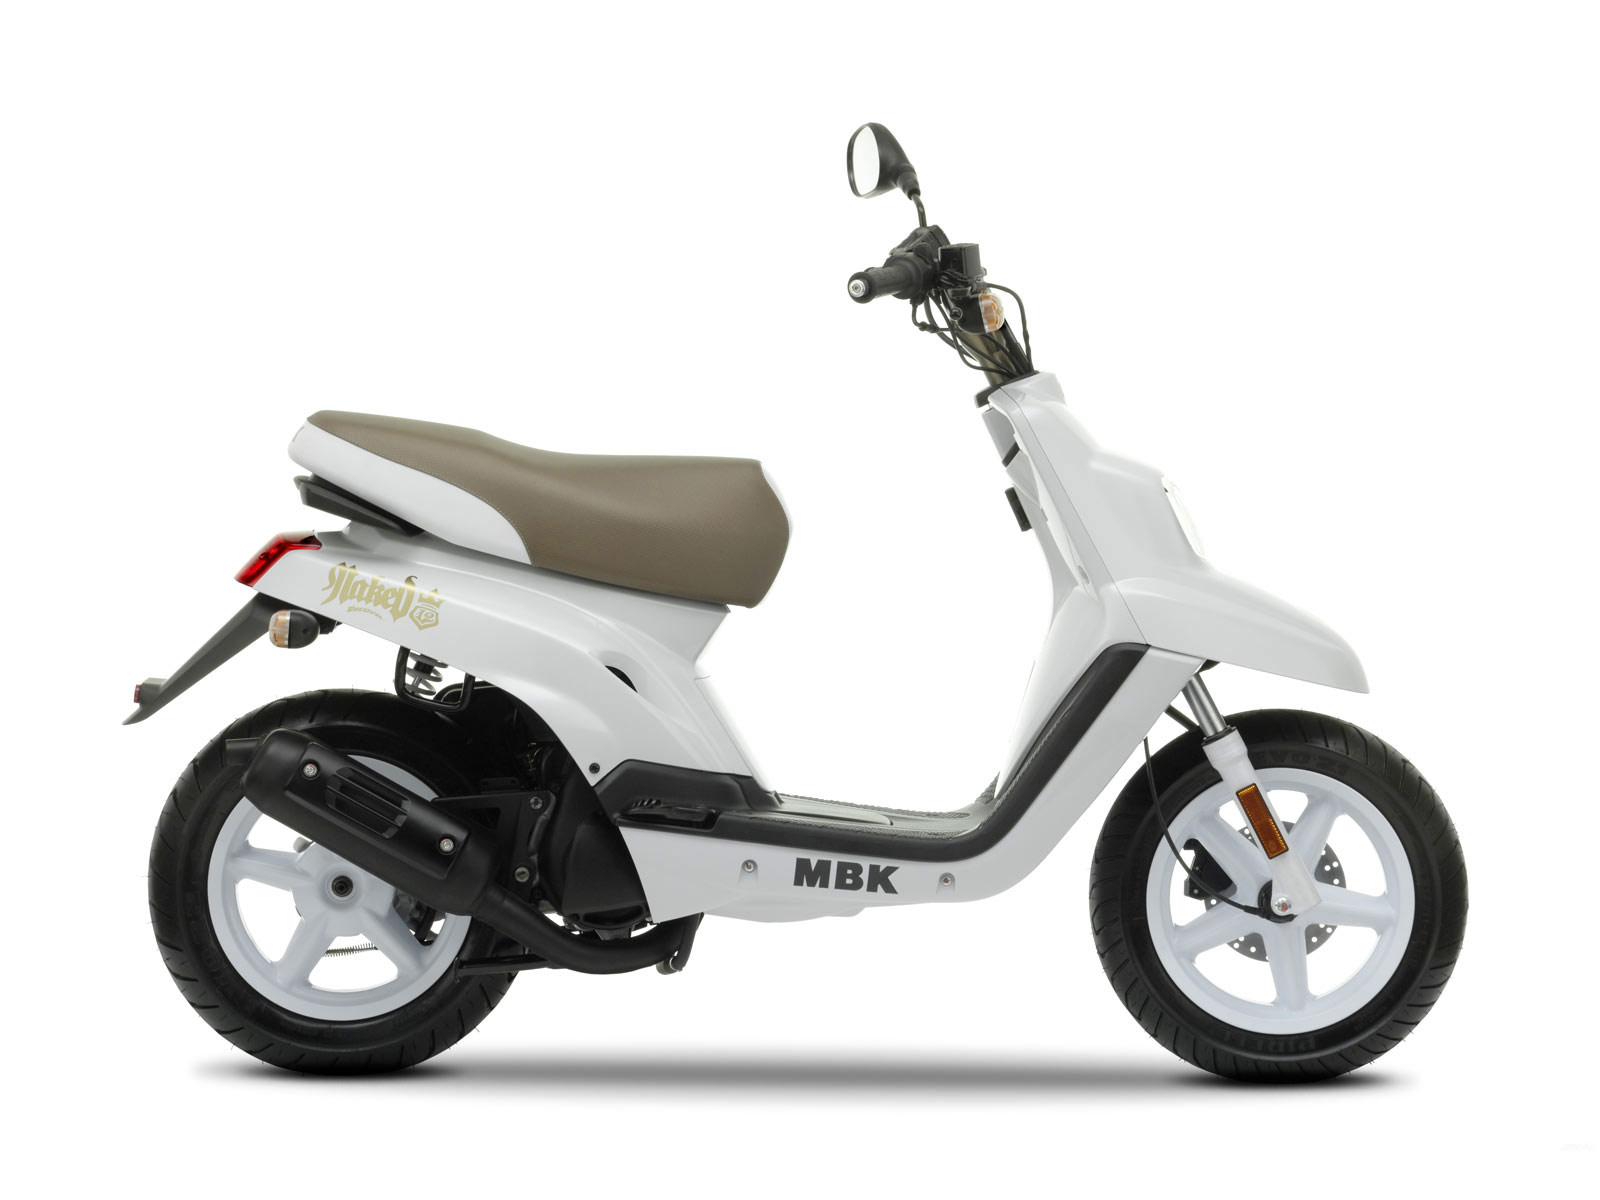 2009 Mbk Booster 12inch Naked Scooter Pictures Specifications